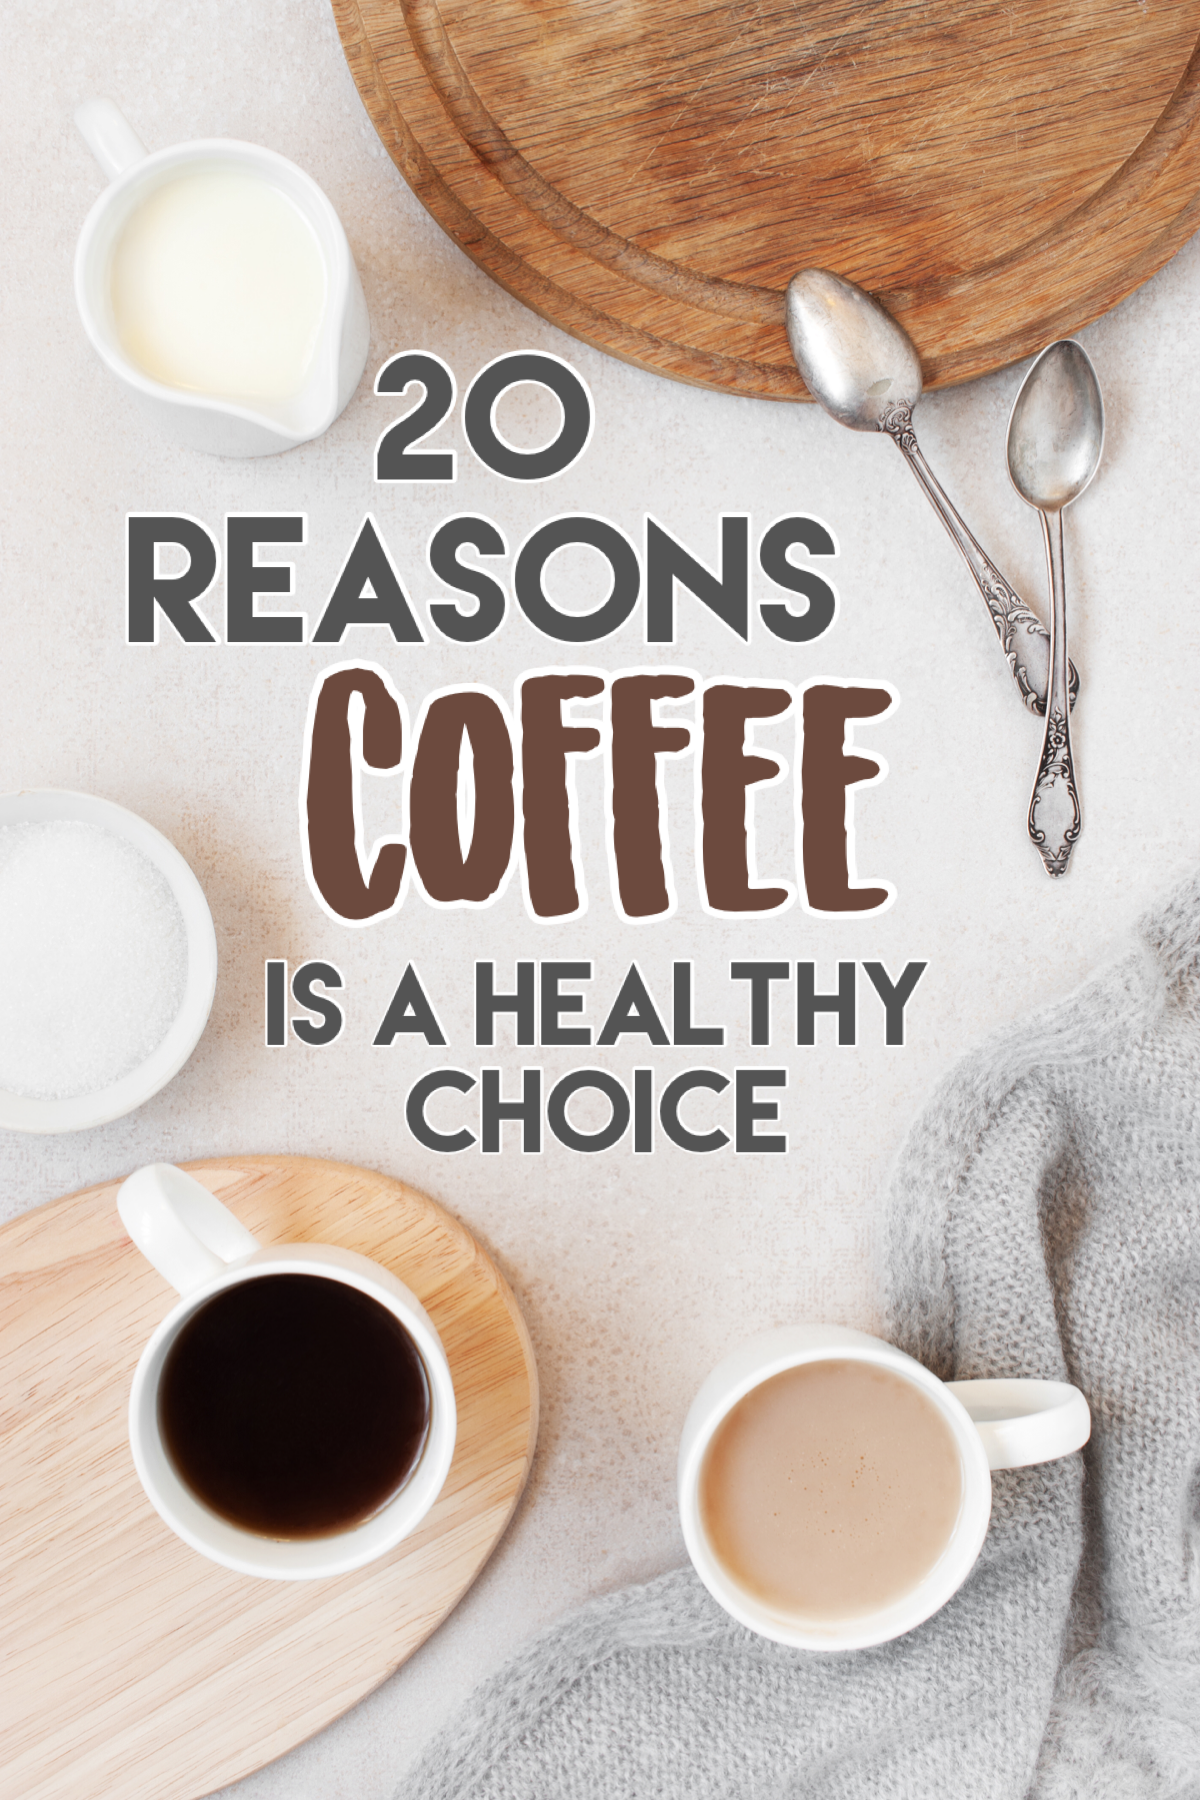 Here are a few great responses you can have for someone who tells you coffee is bad for you ... #coffee #coffeetime #coffeeshop #coffeelove #coffeelover #caferacer #cafe #healthystarbucksdrinks #coffeetips